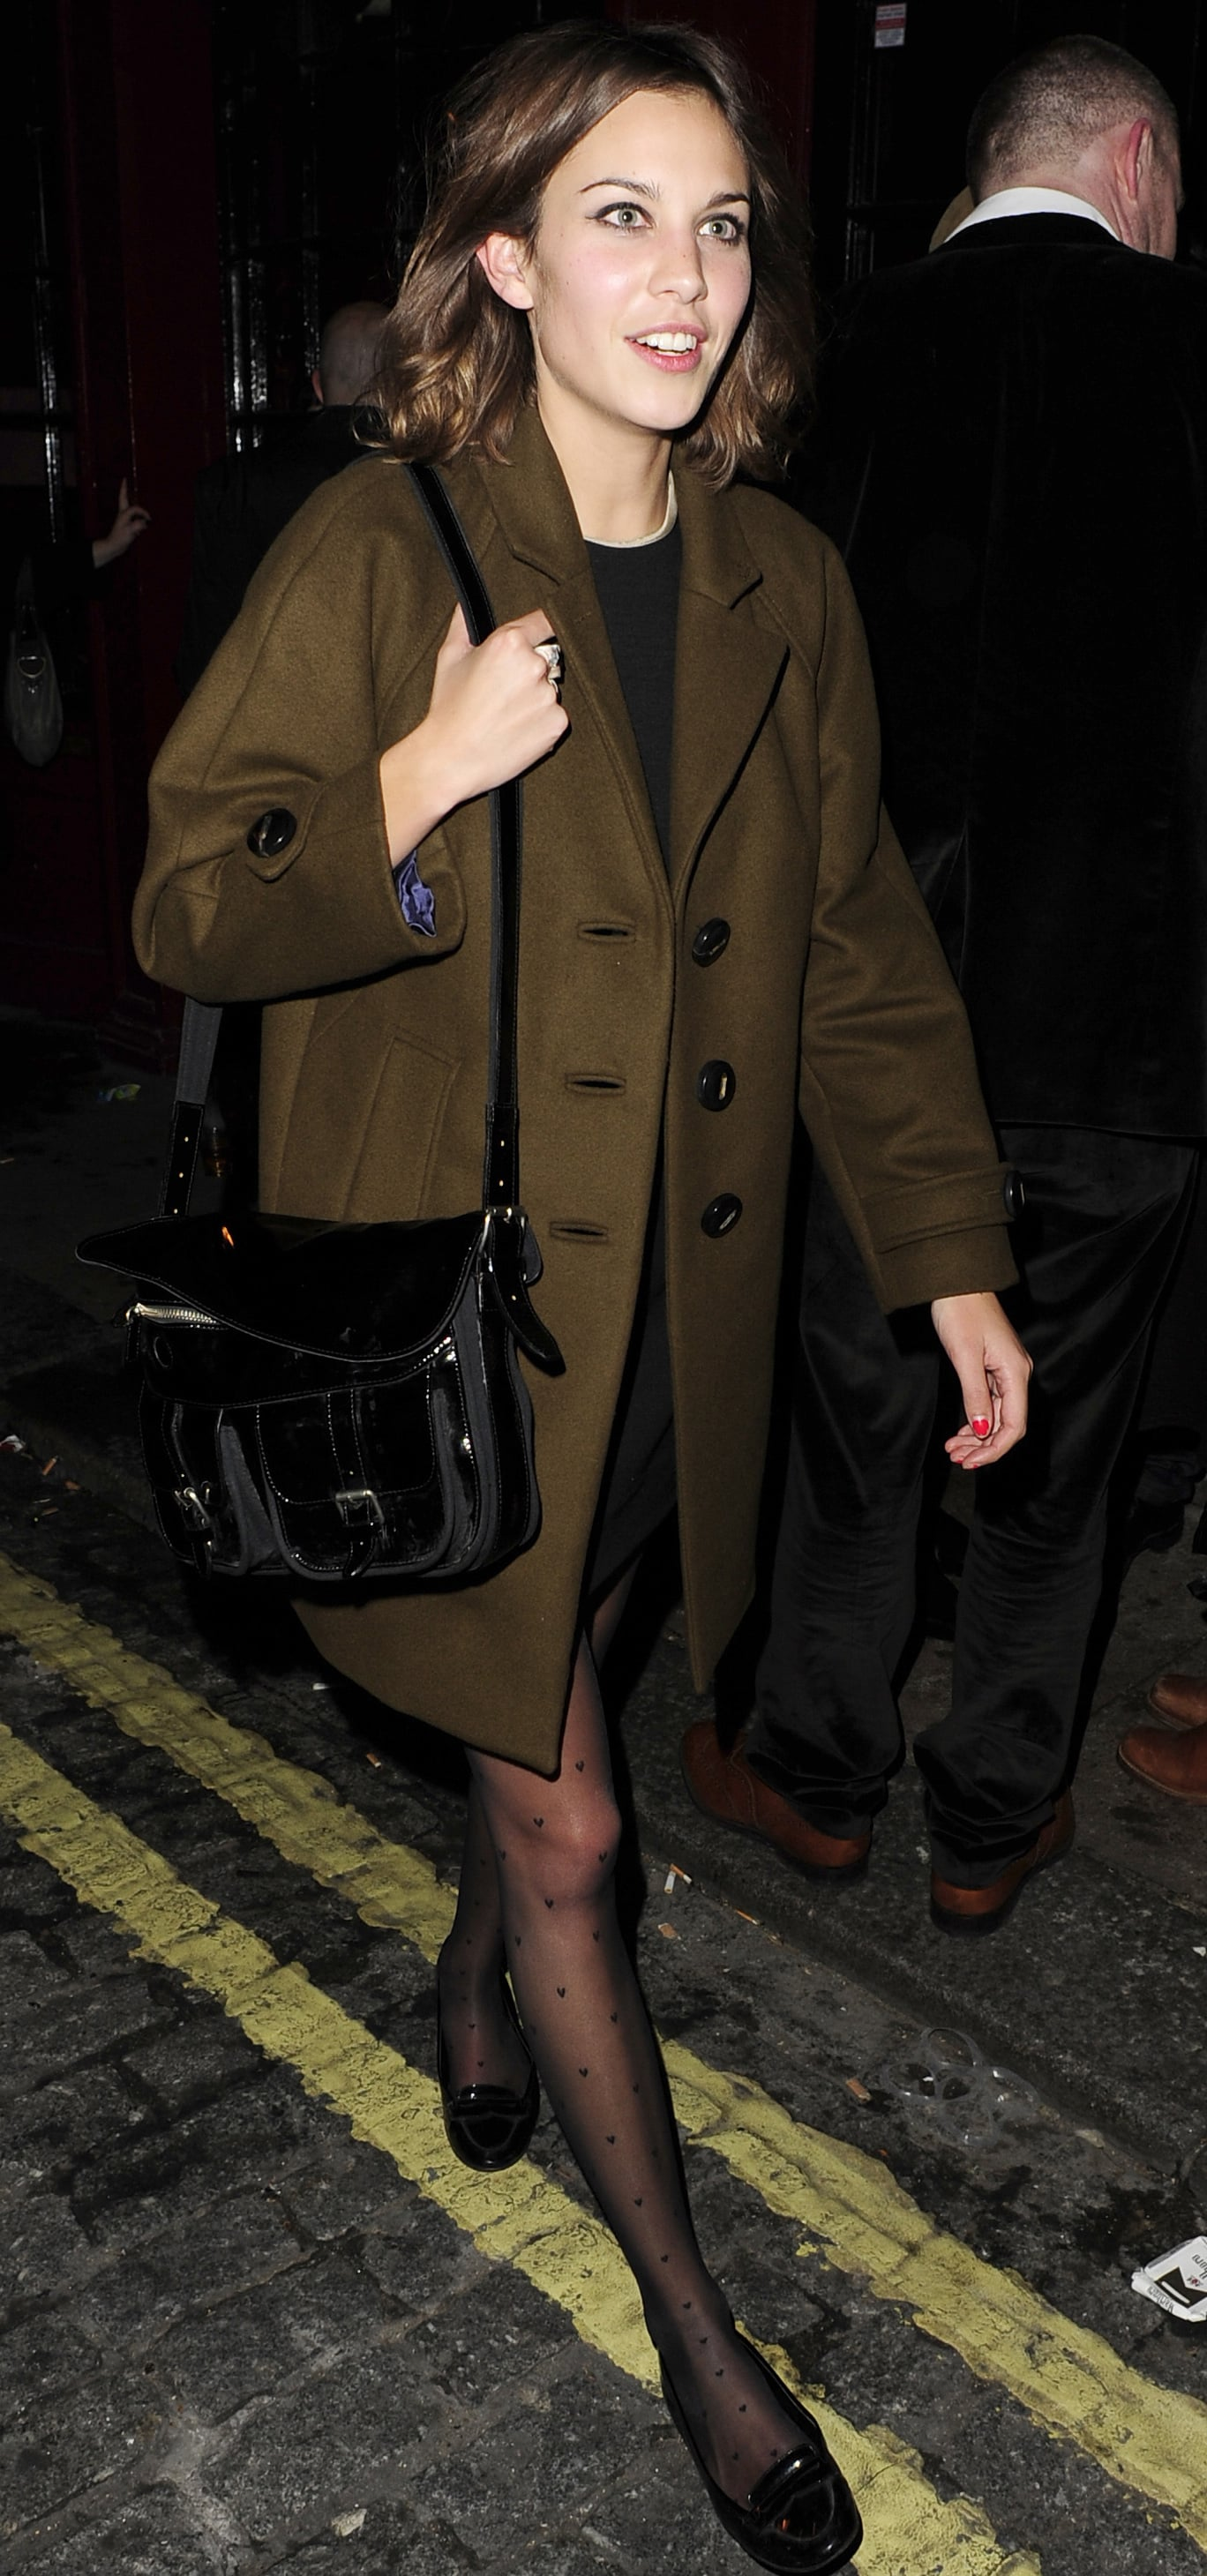 photos from 2008 q awards afterparty including alexa chung